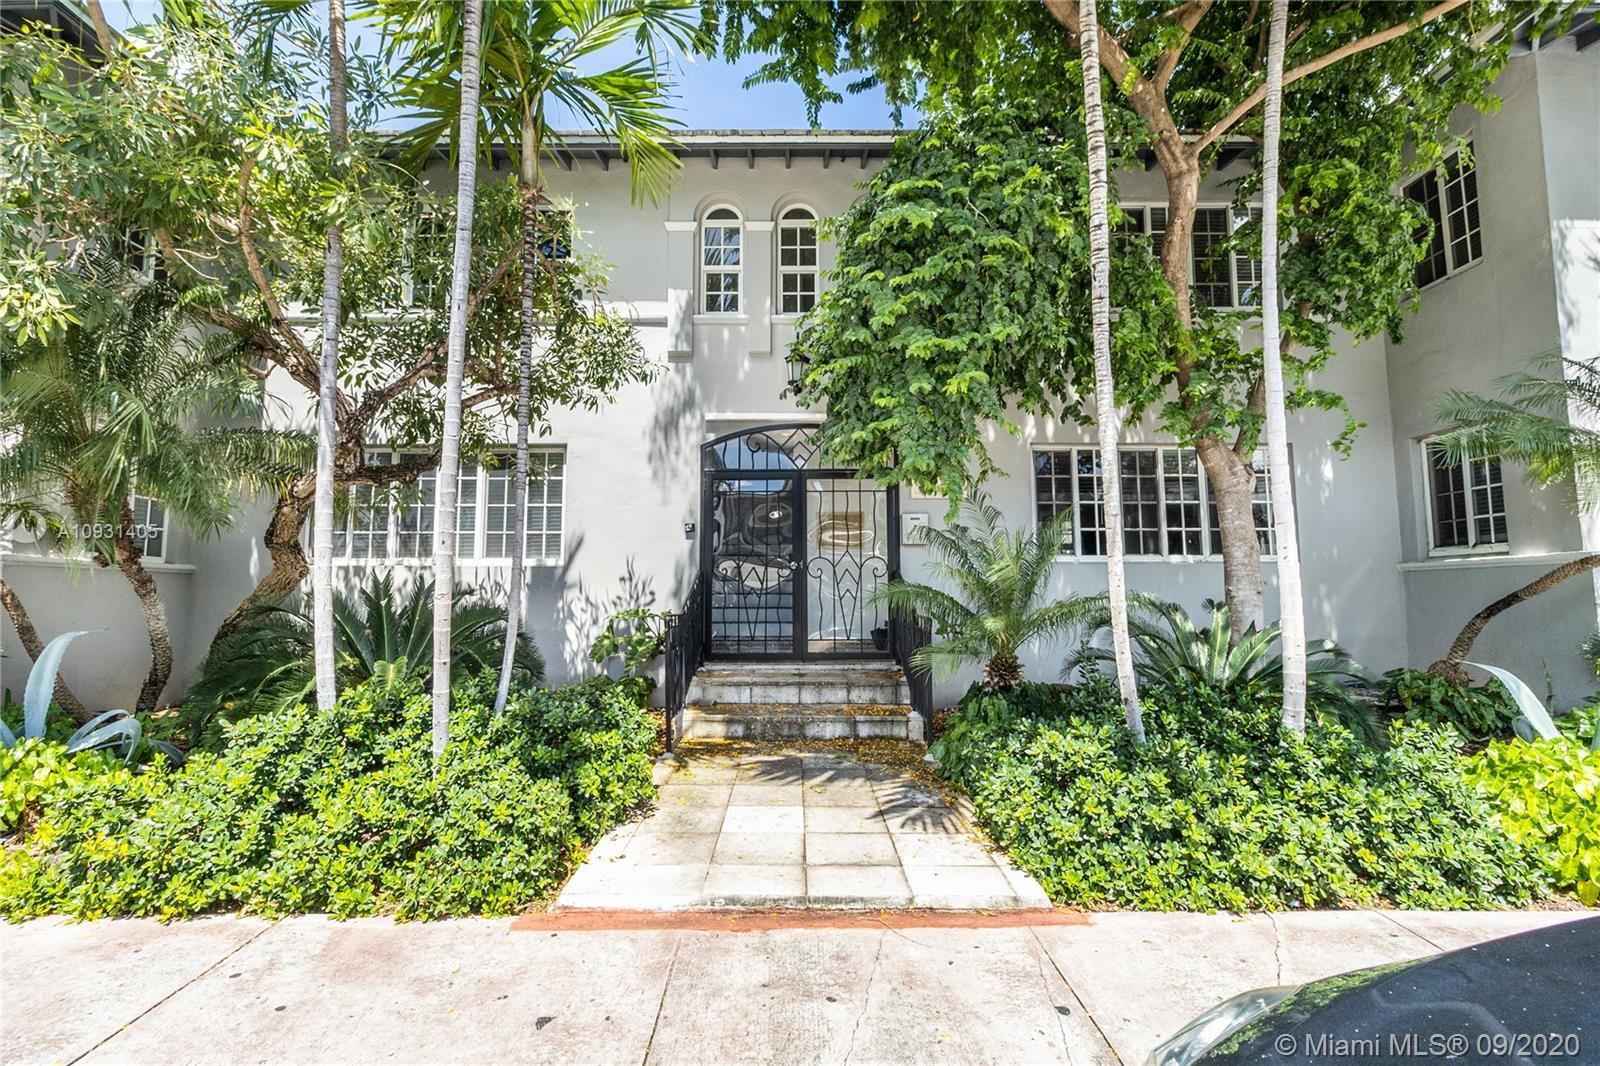 MEDITERRANEAN STYLE CHARM MEETS SOUTH BEACH MODERN STYLE. TOP LEVEL REMODEL, GOURMET KITCHEN WITH GA